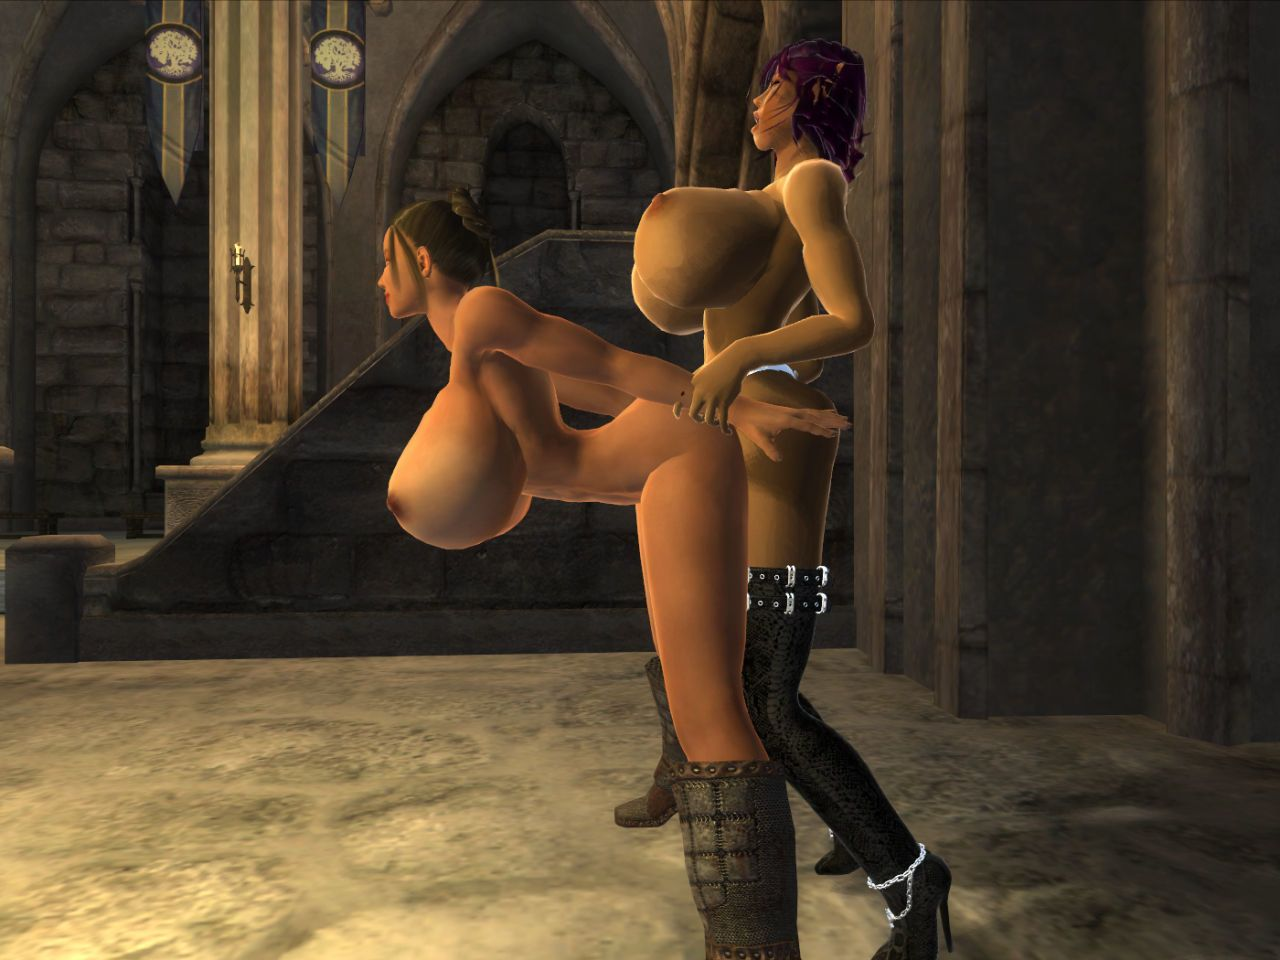 [Chaisy] Oblivion Strap-on Sex (The Elder Scrolls: Oblivion) - part 2